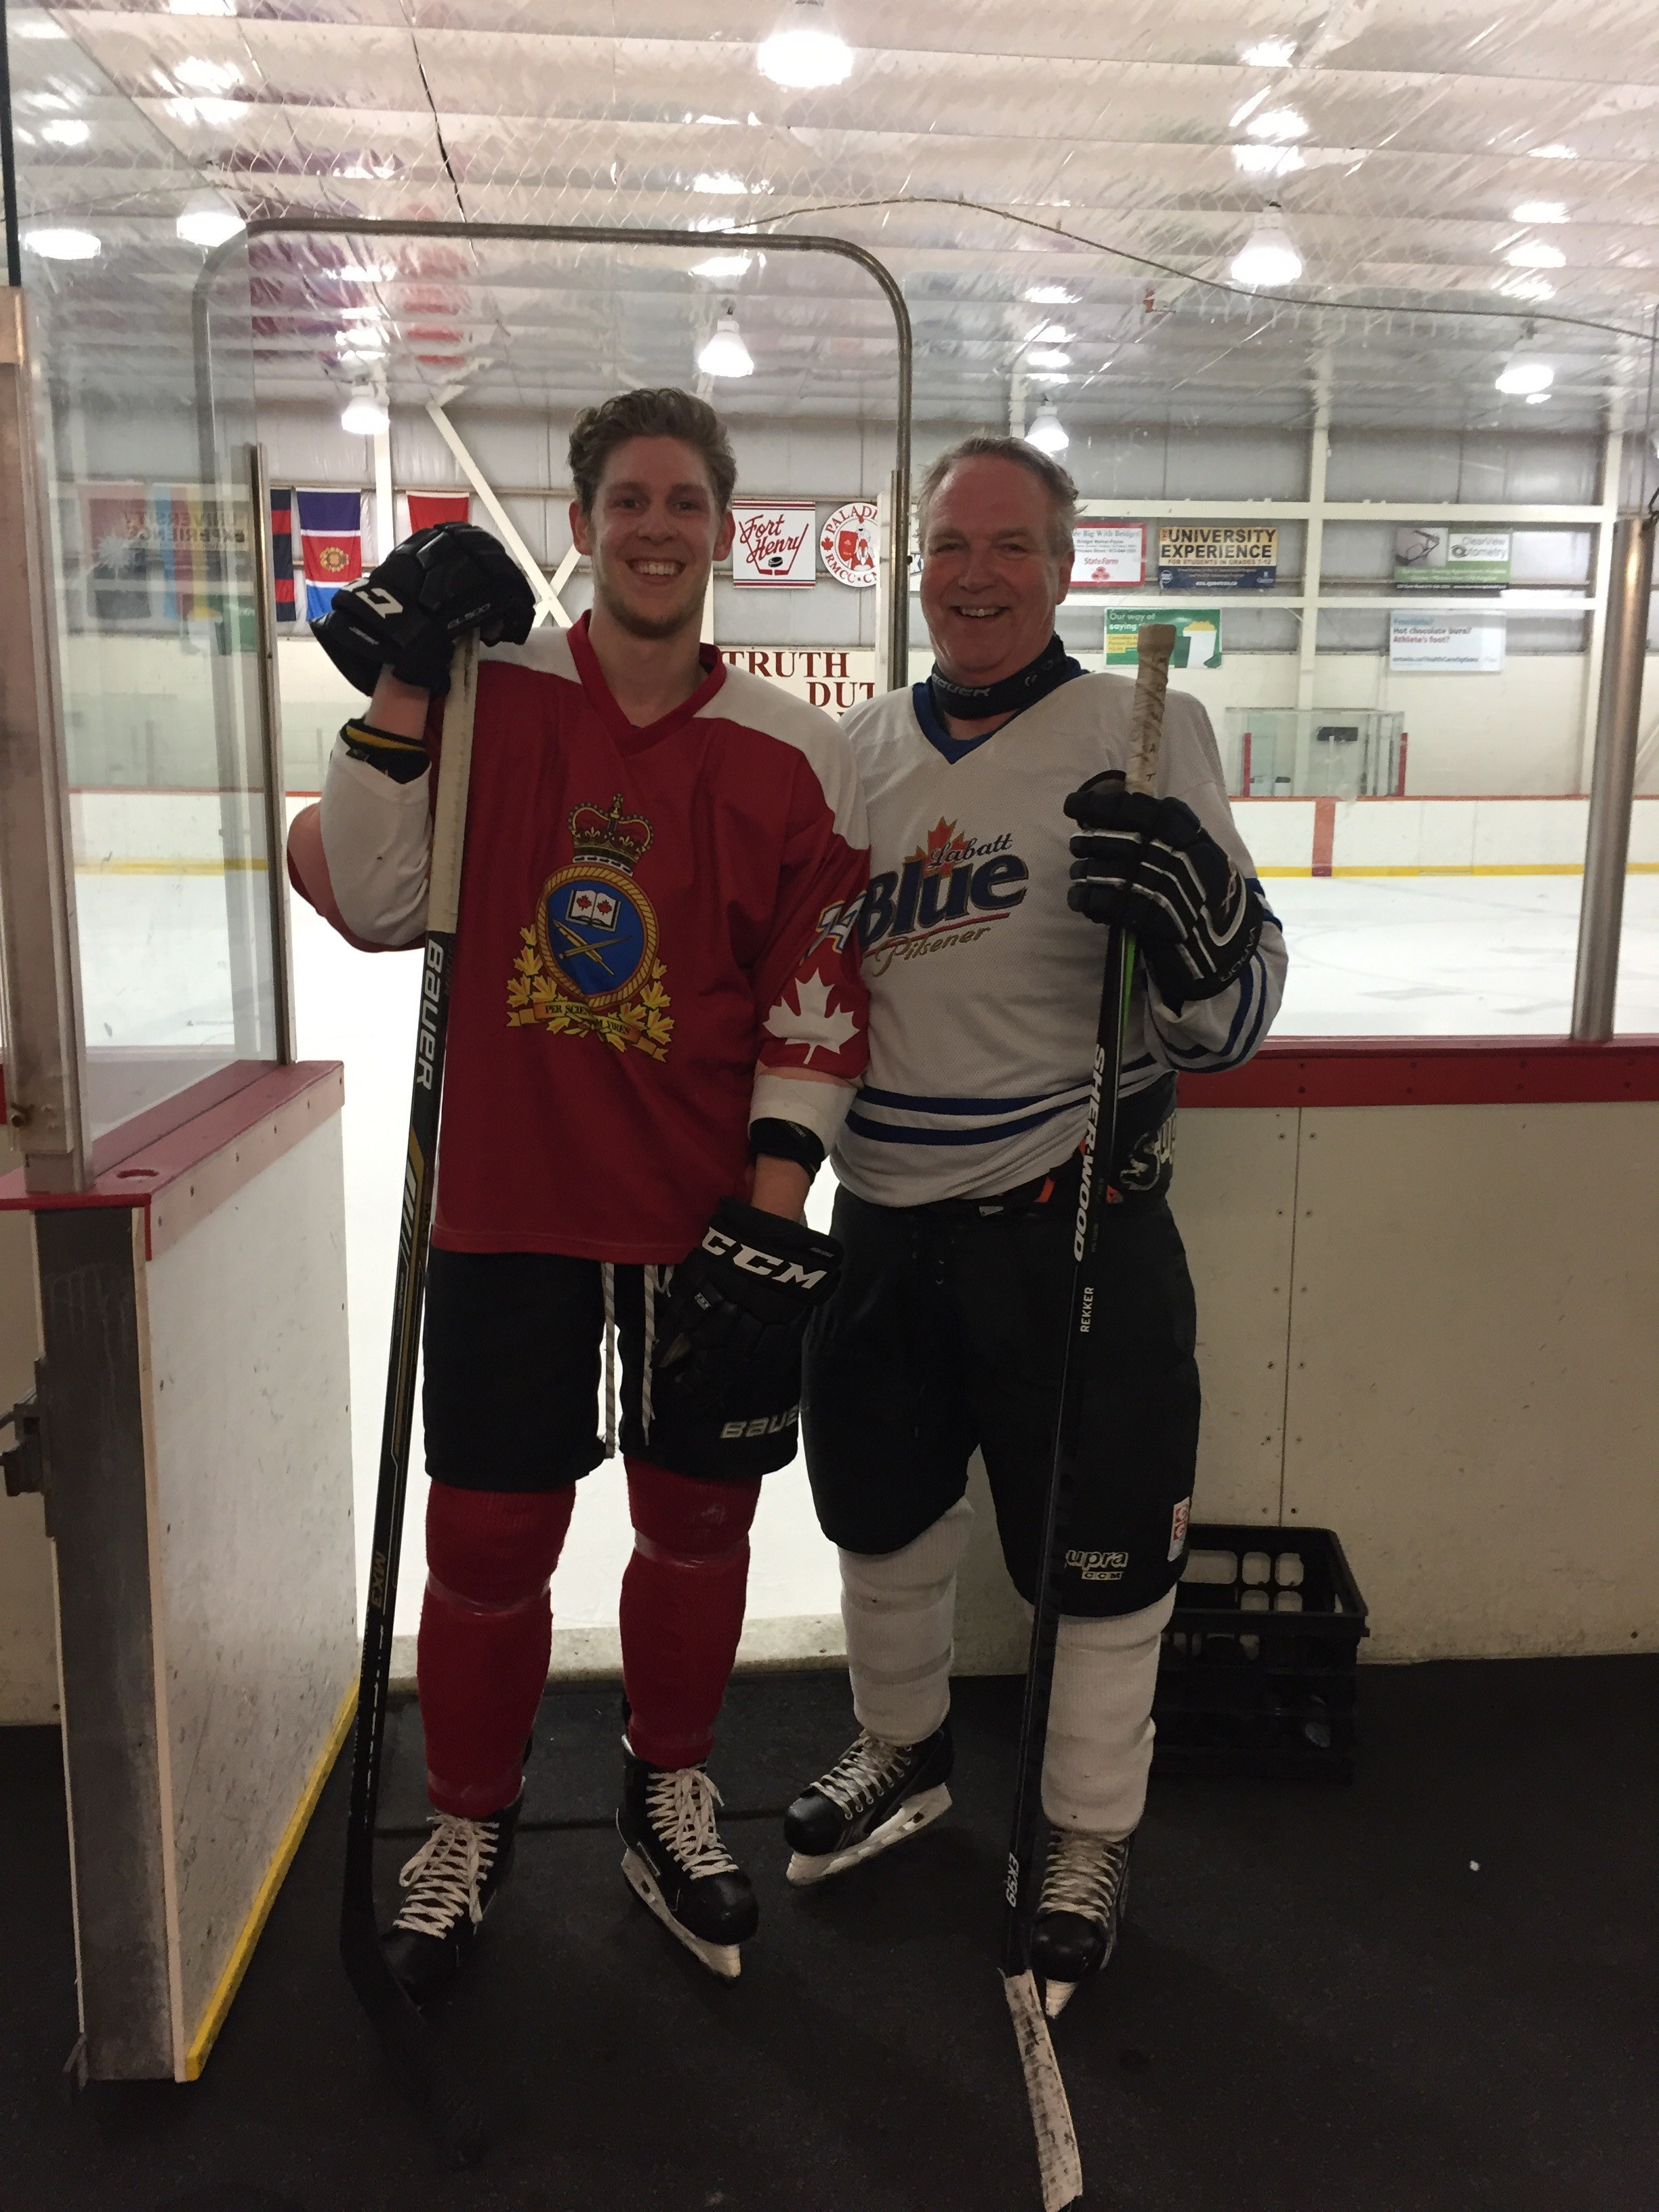 back at the constantine arena playing hockey at noon with my stepson riley - photo was for hockey jersey day in memory of the victims of the humbolt broncos bus crash